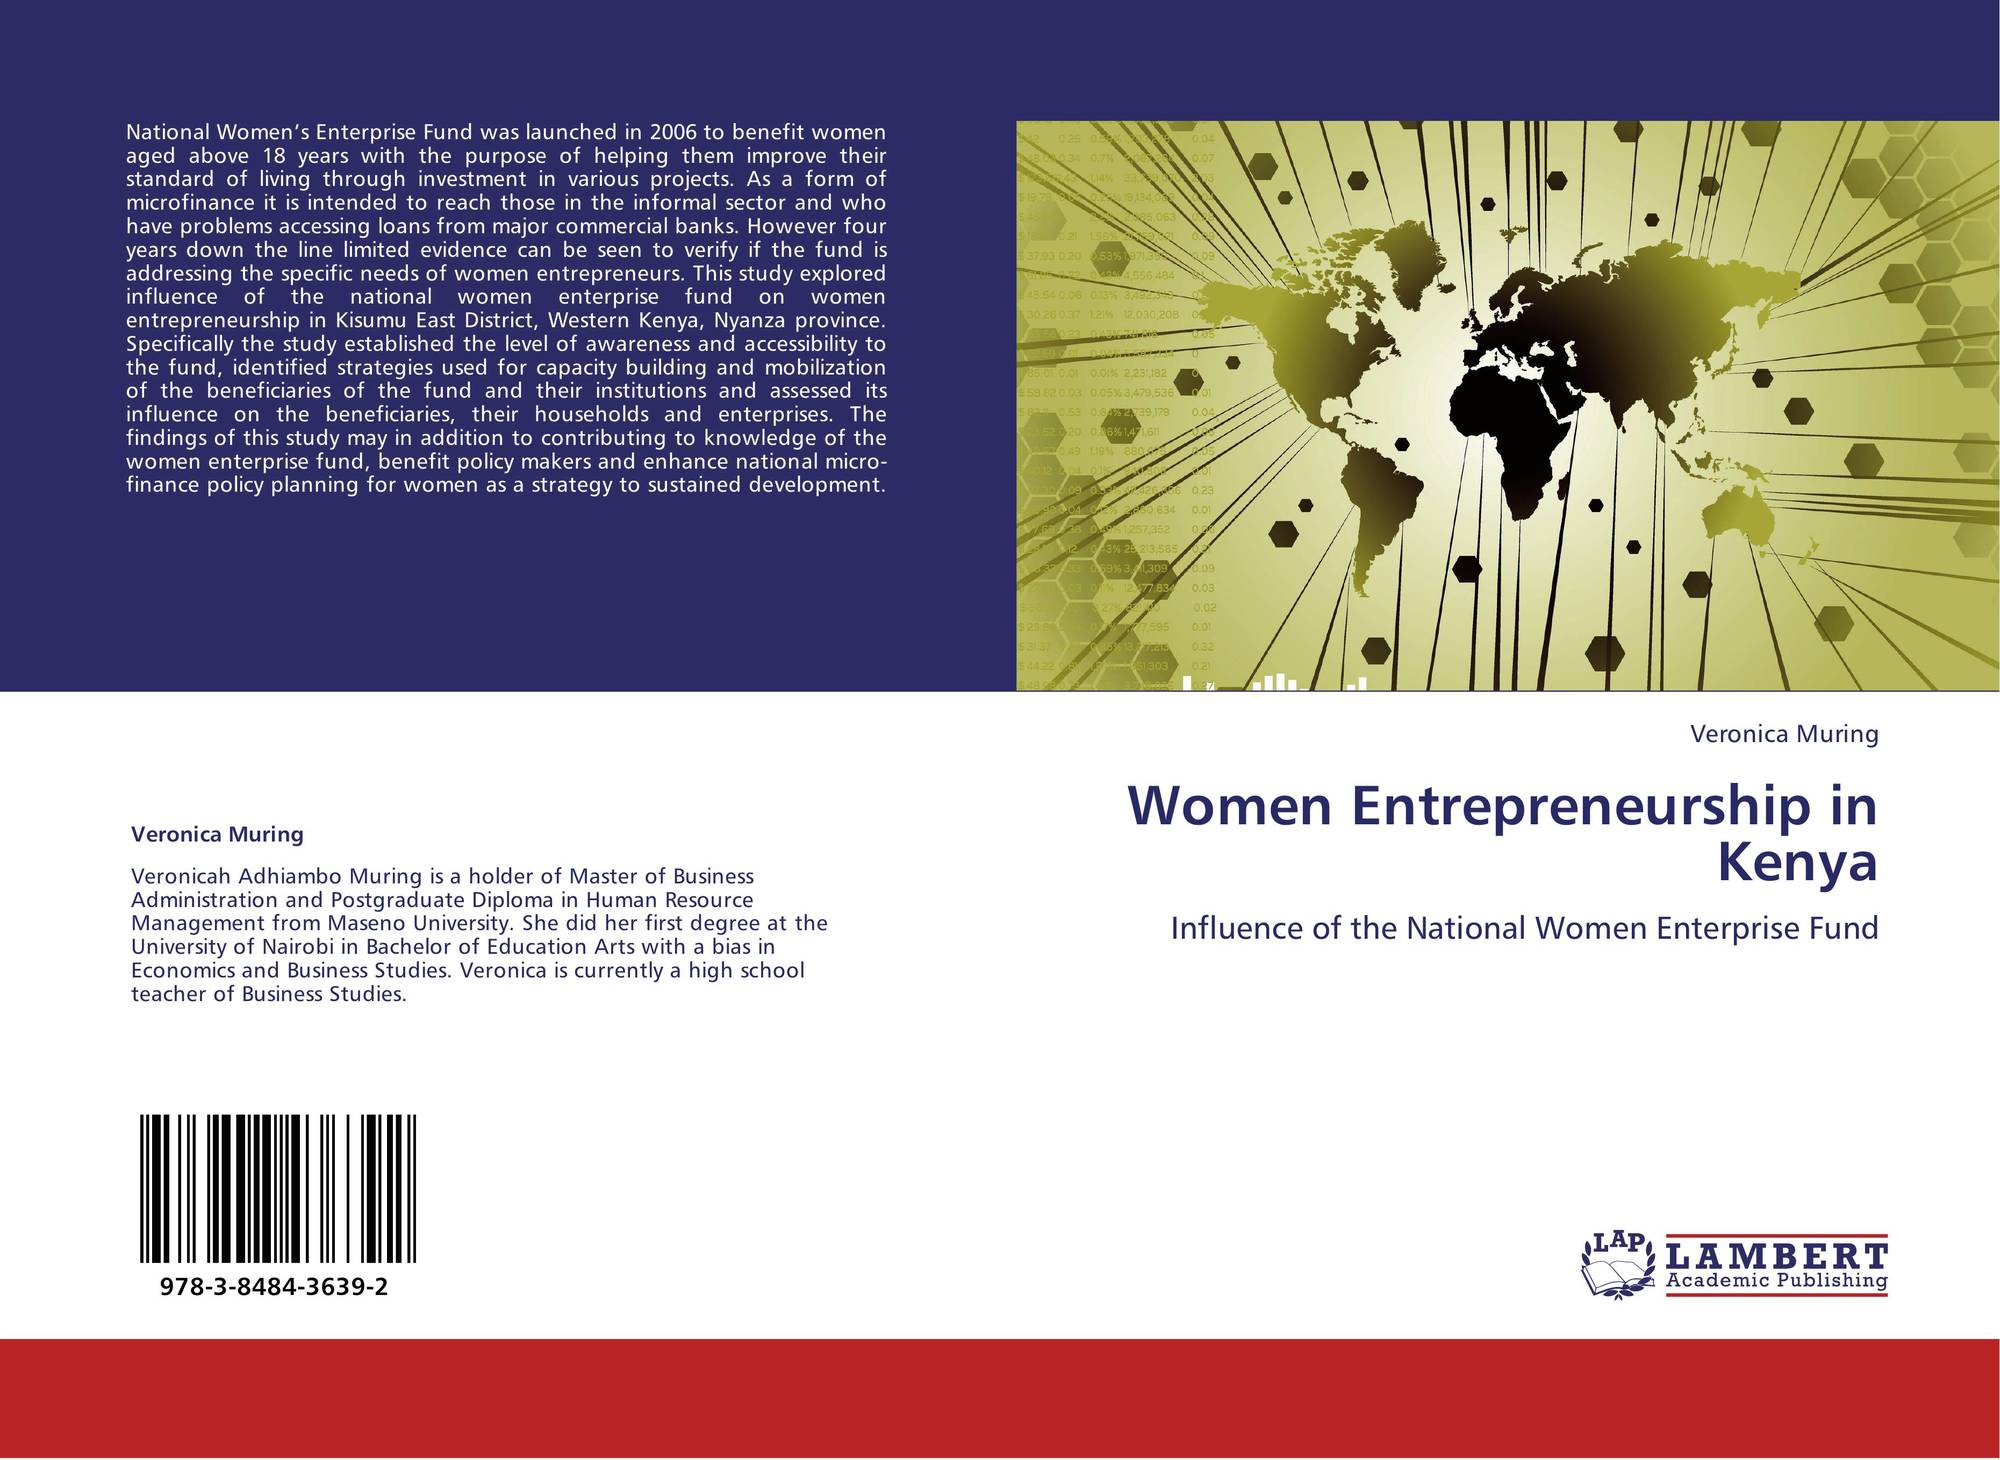 small and medium enterprises in kenya economics essay Given the economic and development benefits of fast-growing and high-impact companies like farmerline and niritech, support for small and medium enterprises has emerged as a top priority in the global agenda.